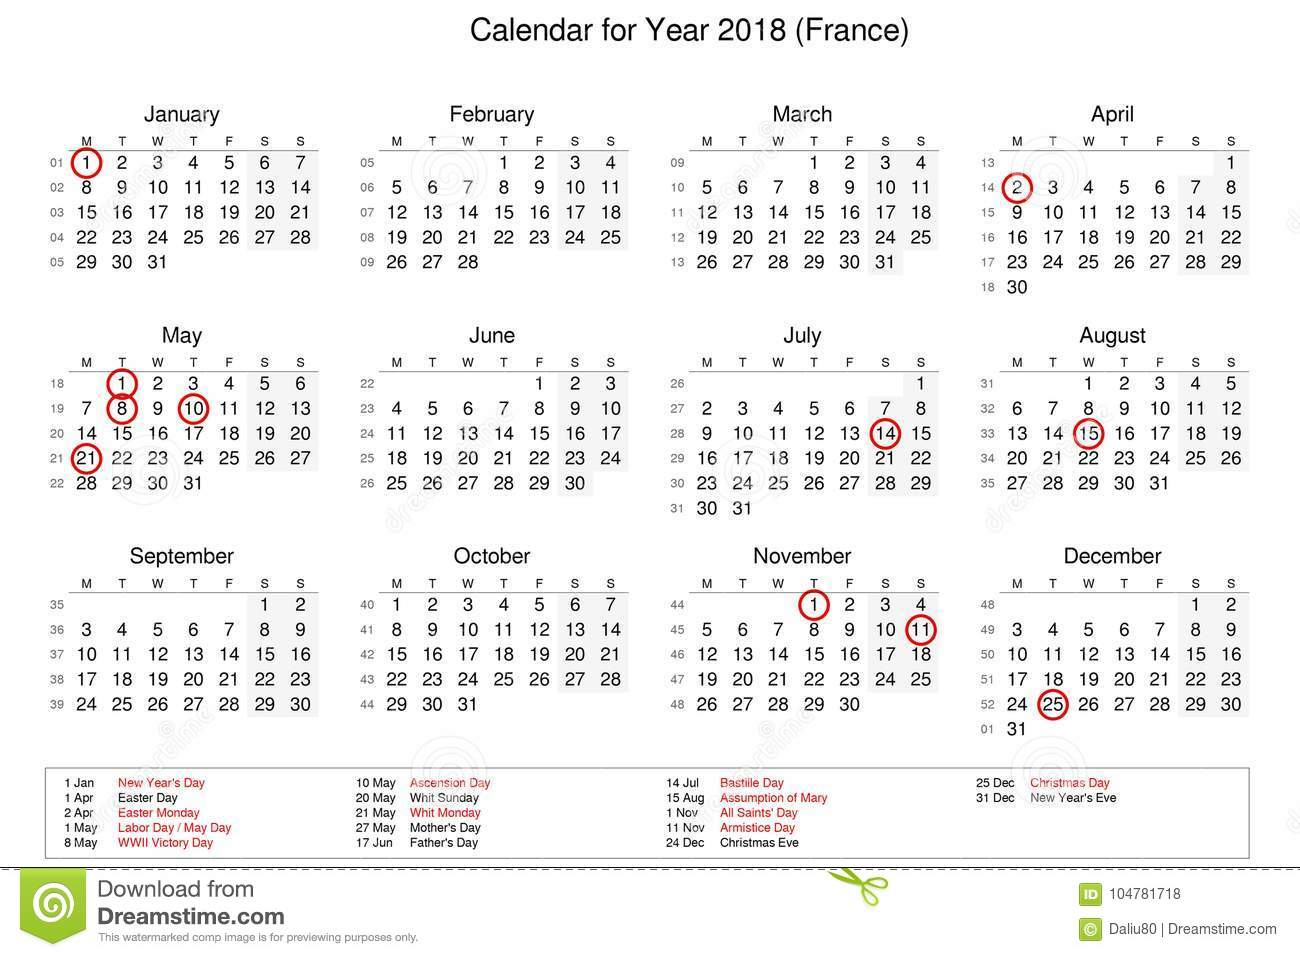 Calendar Of Year 2018 With Public Holidays And Bank Holidays For ...